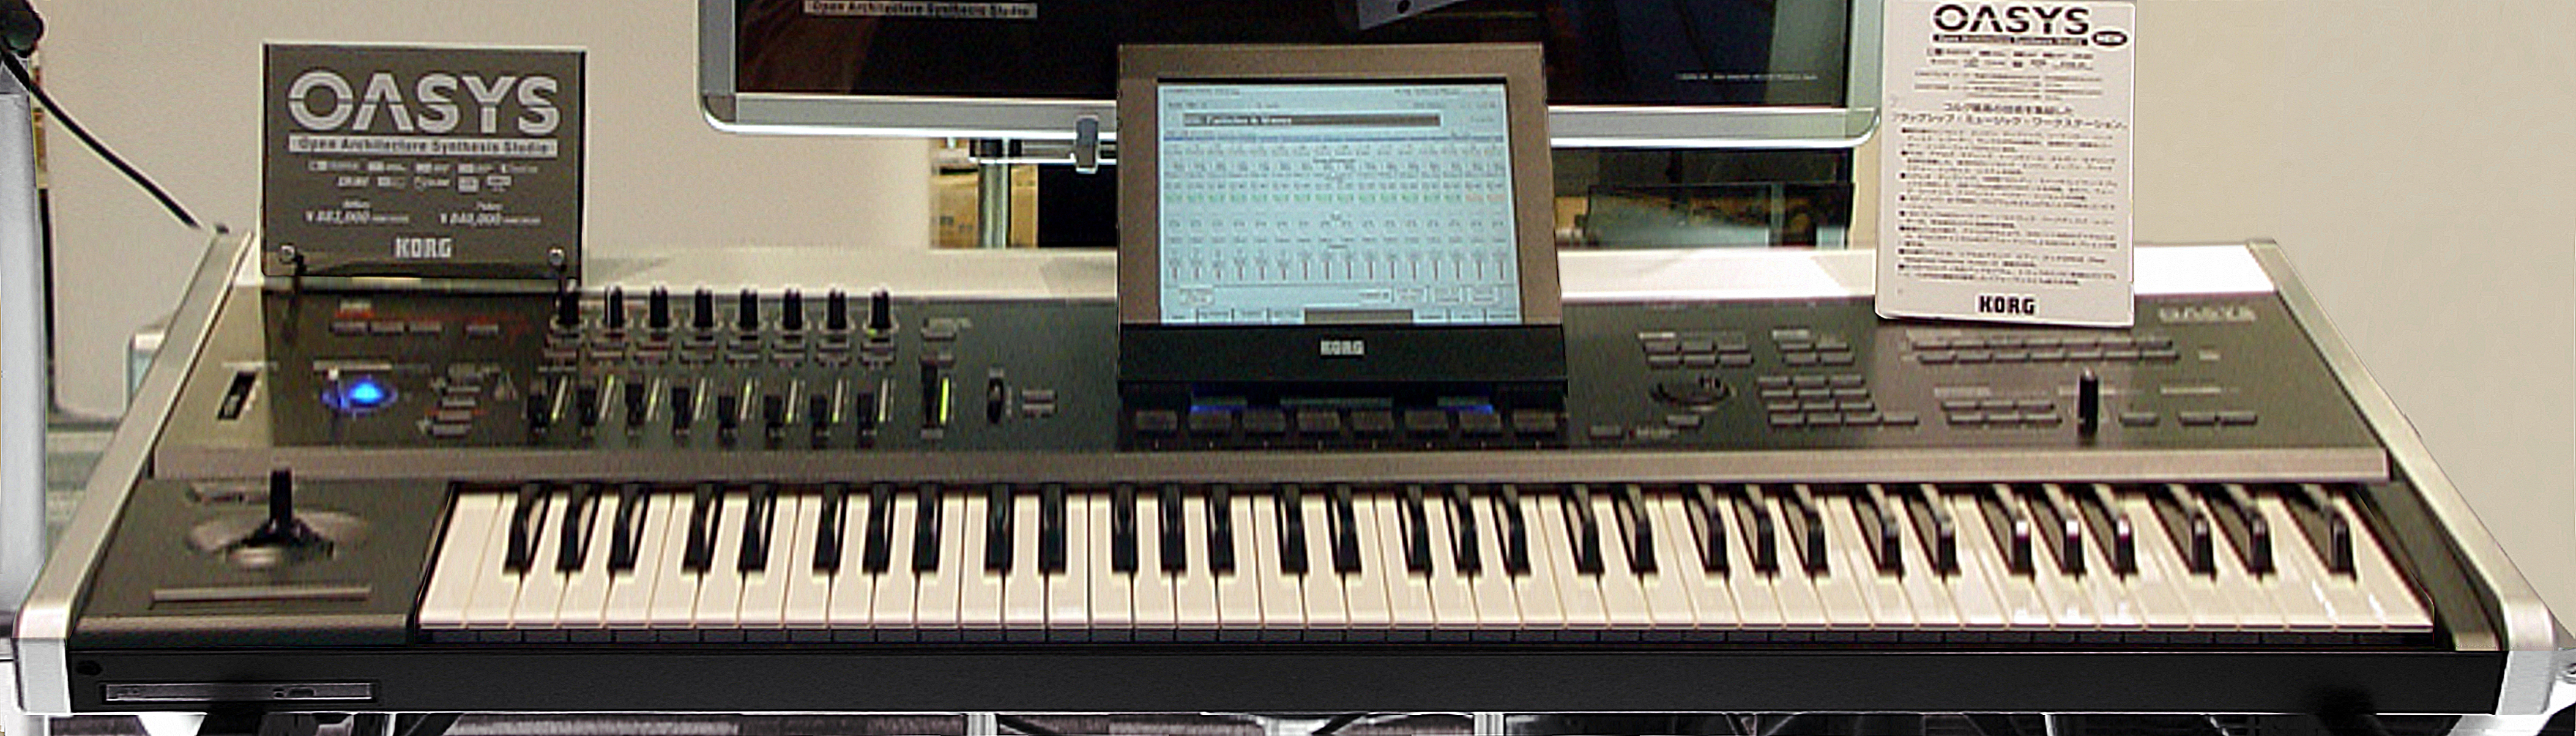 Korg Oasys Manual Pdf Download